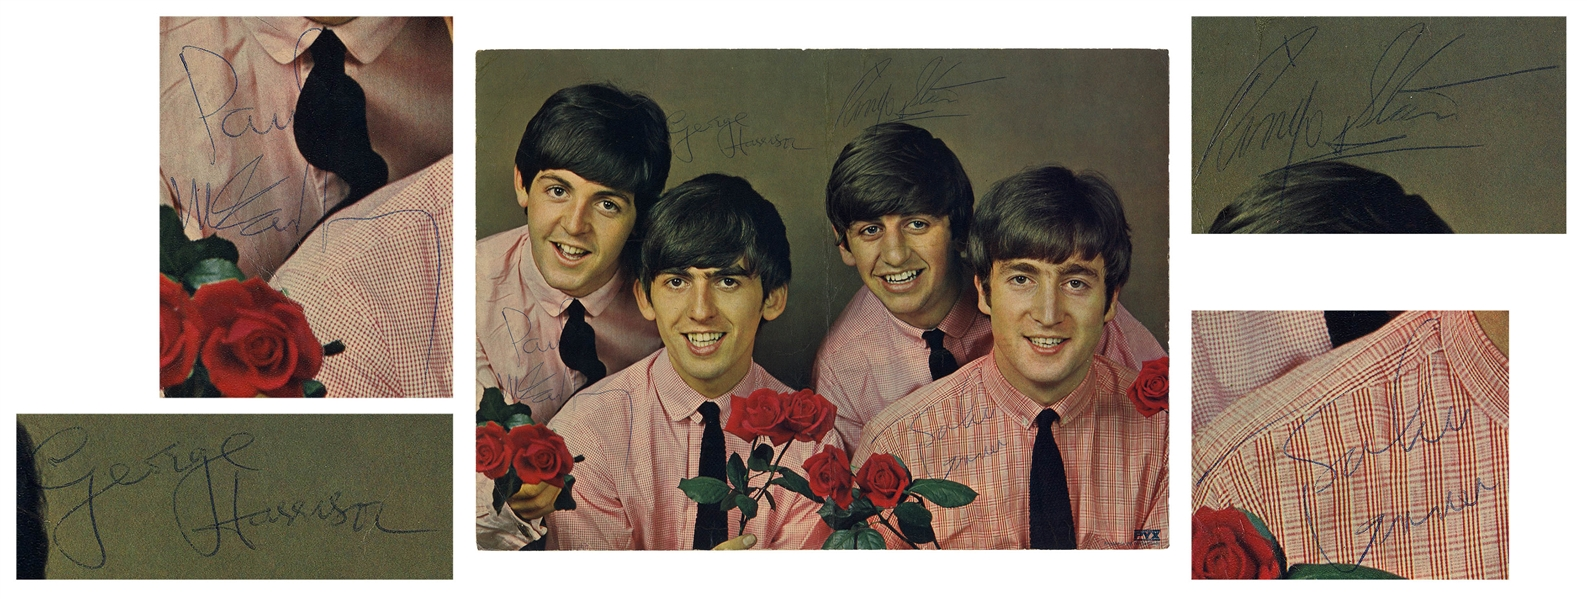 The Beatles Signed 12.25'' x 9'' Photo, Signed by Paul McCartney, John Lennon, George Harrison & Ringo Starr -- With Beckett COA for All Four Signatures